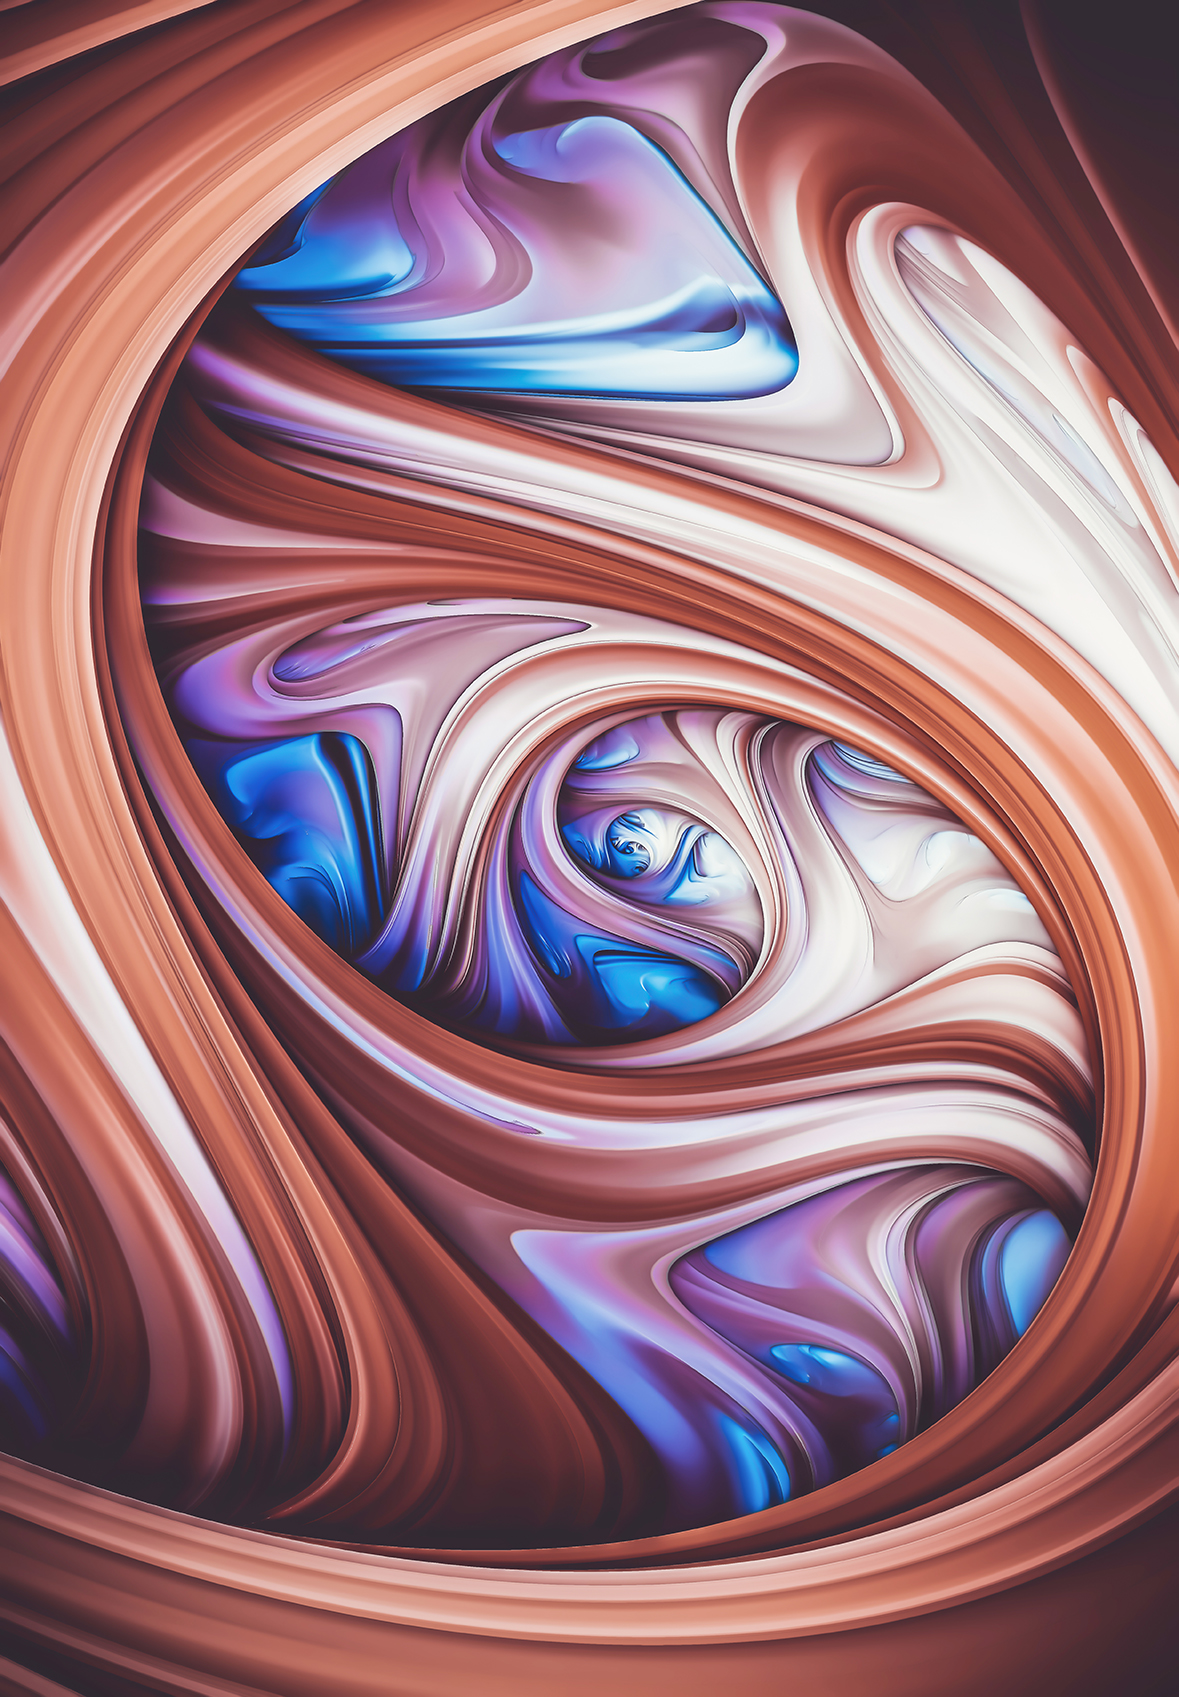 Blueberry Caramel. Abstract Swirl Art By Stephen Geisel, Love-fi